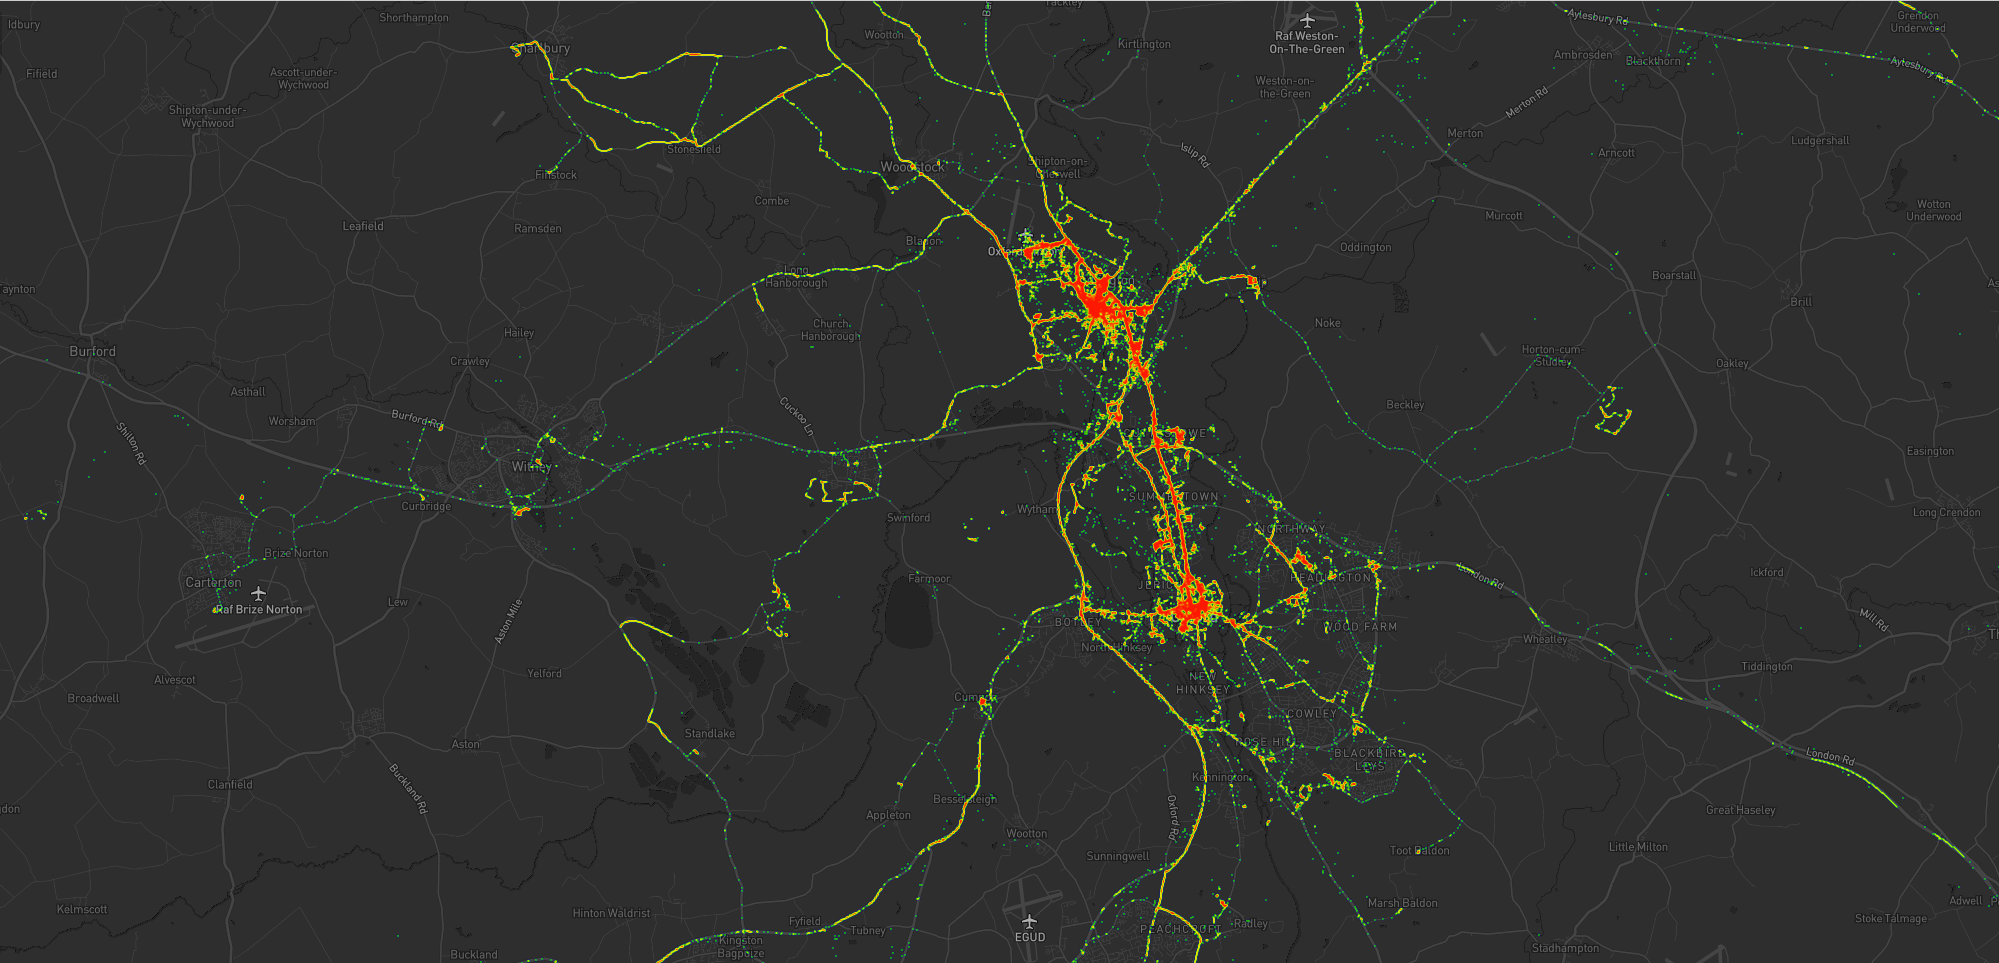 Heatmap showing Dan's movements around Kidlington, including a lot of time in the village and in Oxford City Centre, as well as hotspots at the hospital, parks, swimming pools, and places that Dan used to volunteer. Individual expeditions can also be identified.